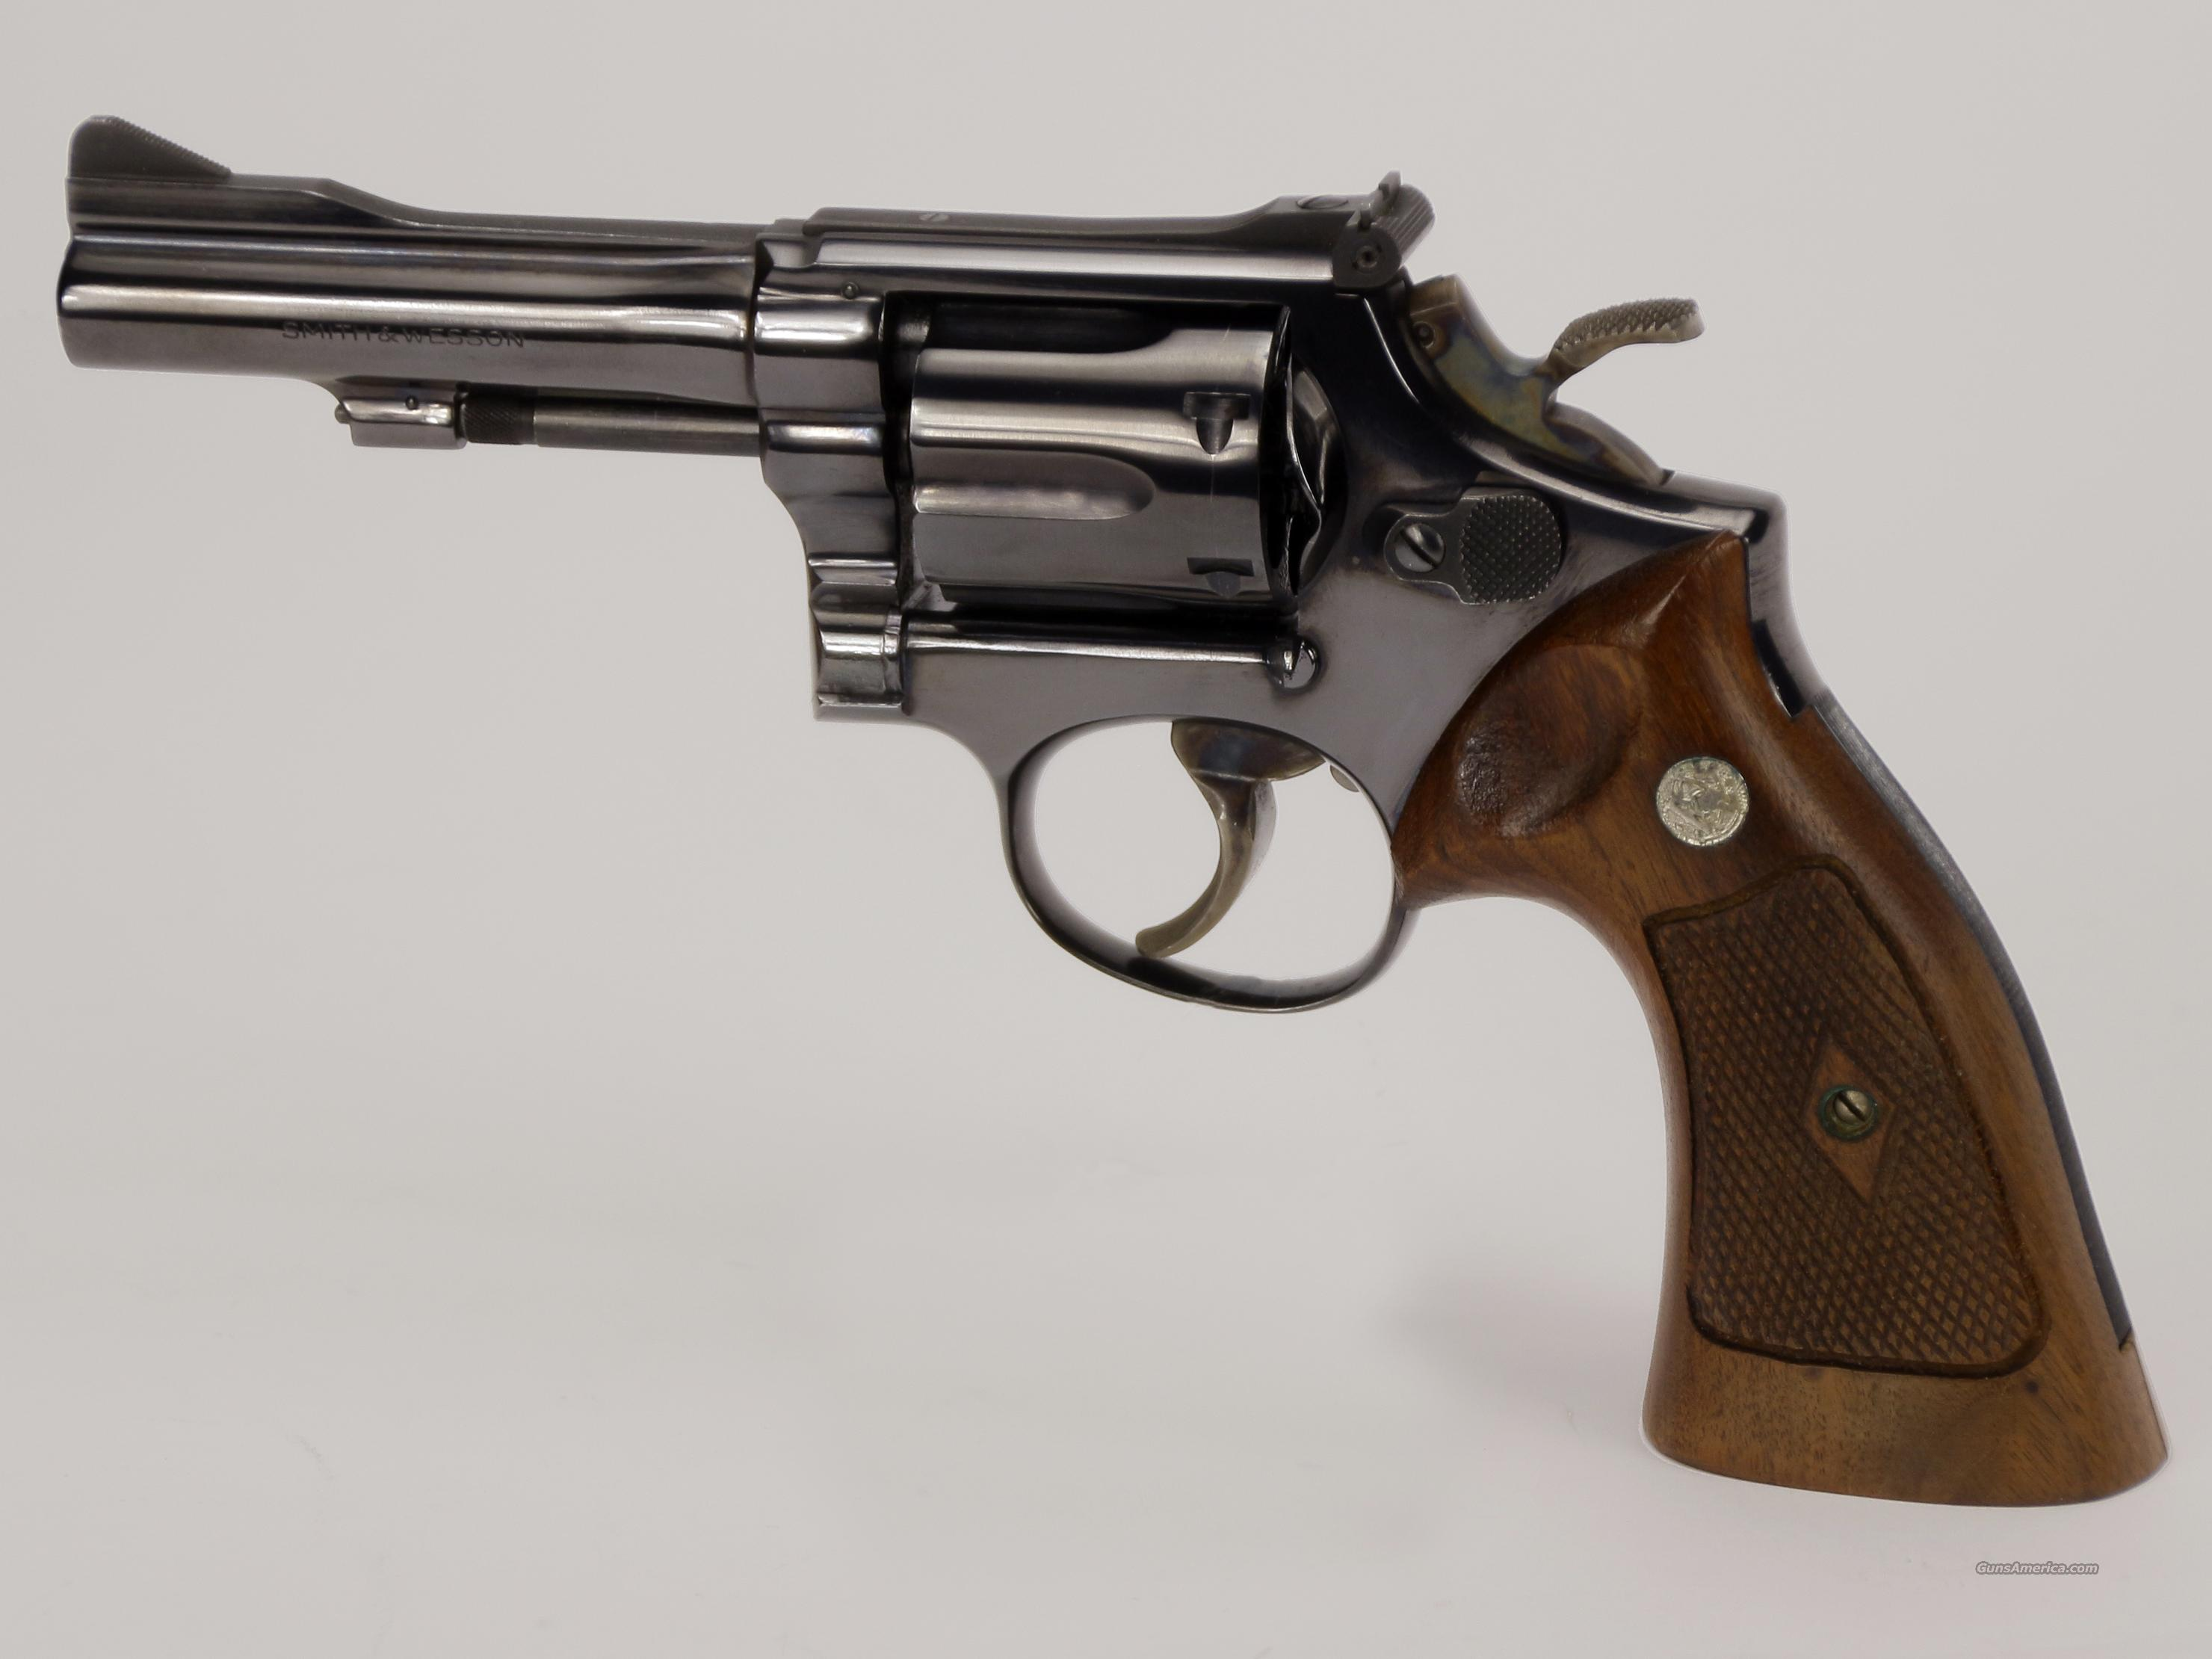 Smith & Wesson Model 15 Revolver  Guns > Pistols > Smith & Wesson Revolvers > Full Frame Revolver